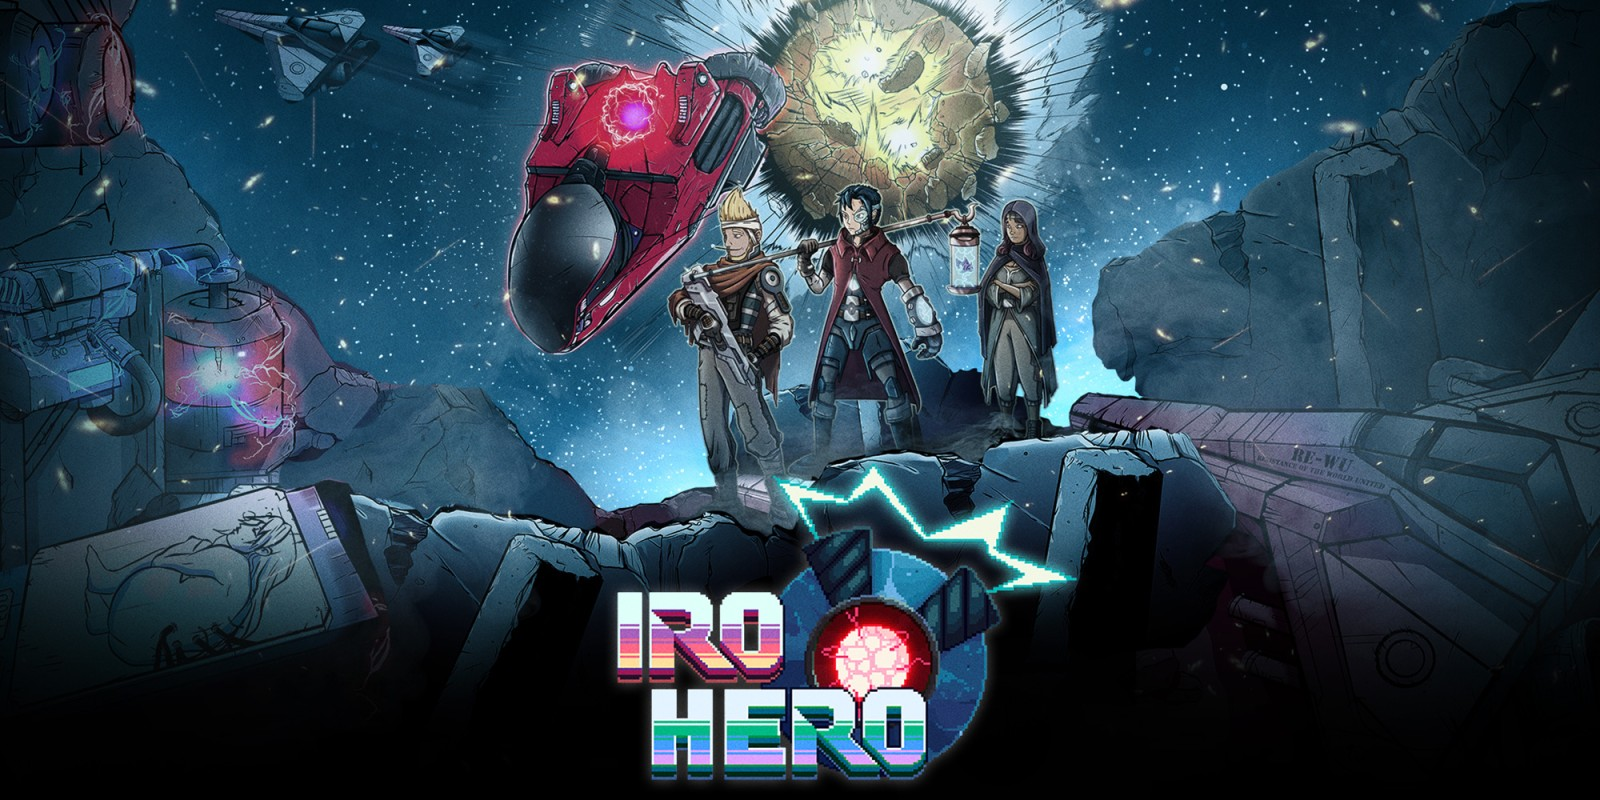 Iro Hero  Nintendo Switch DownloadSoftware  Spiele  Nintendo